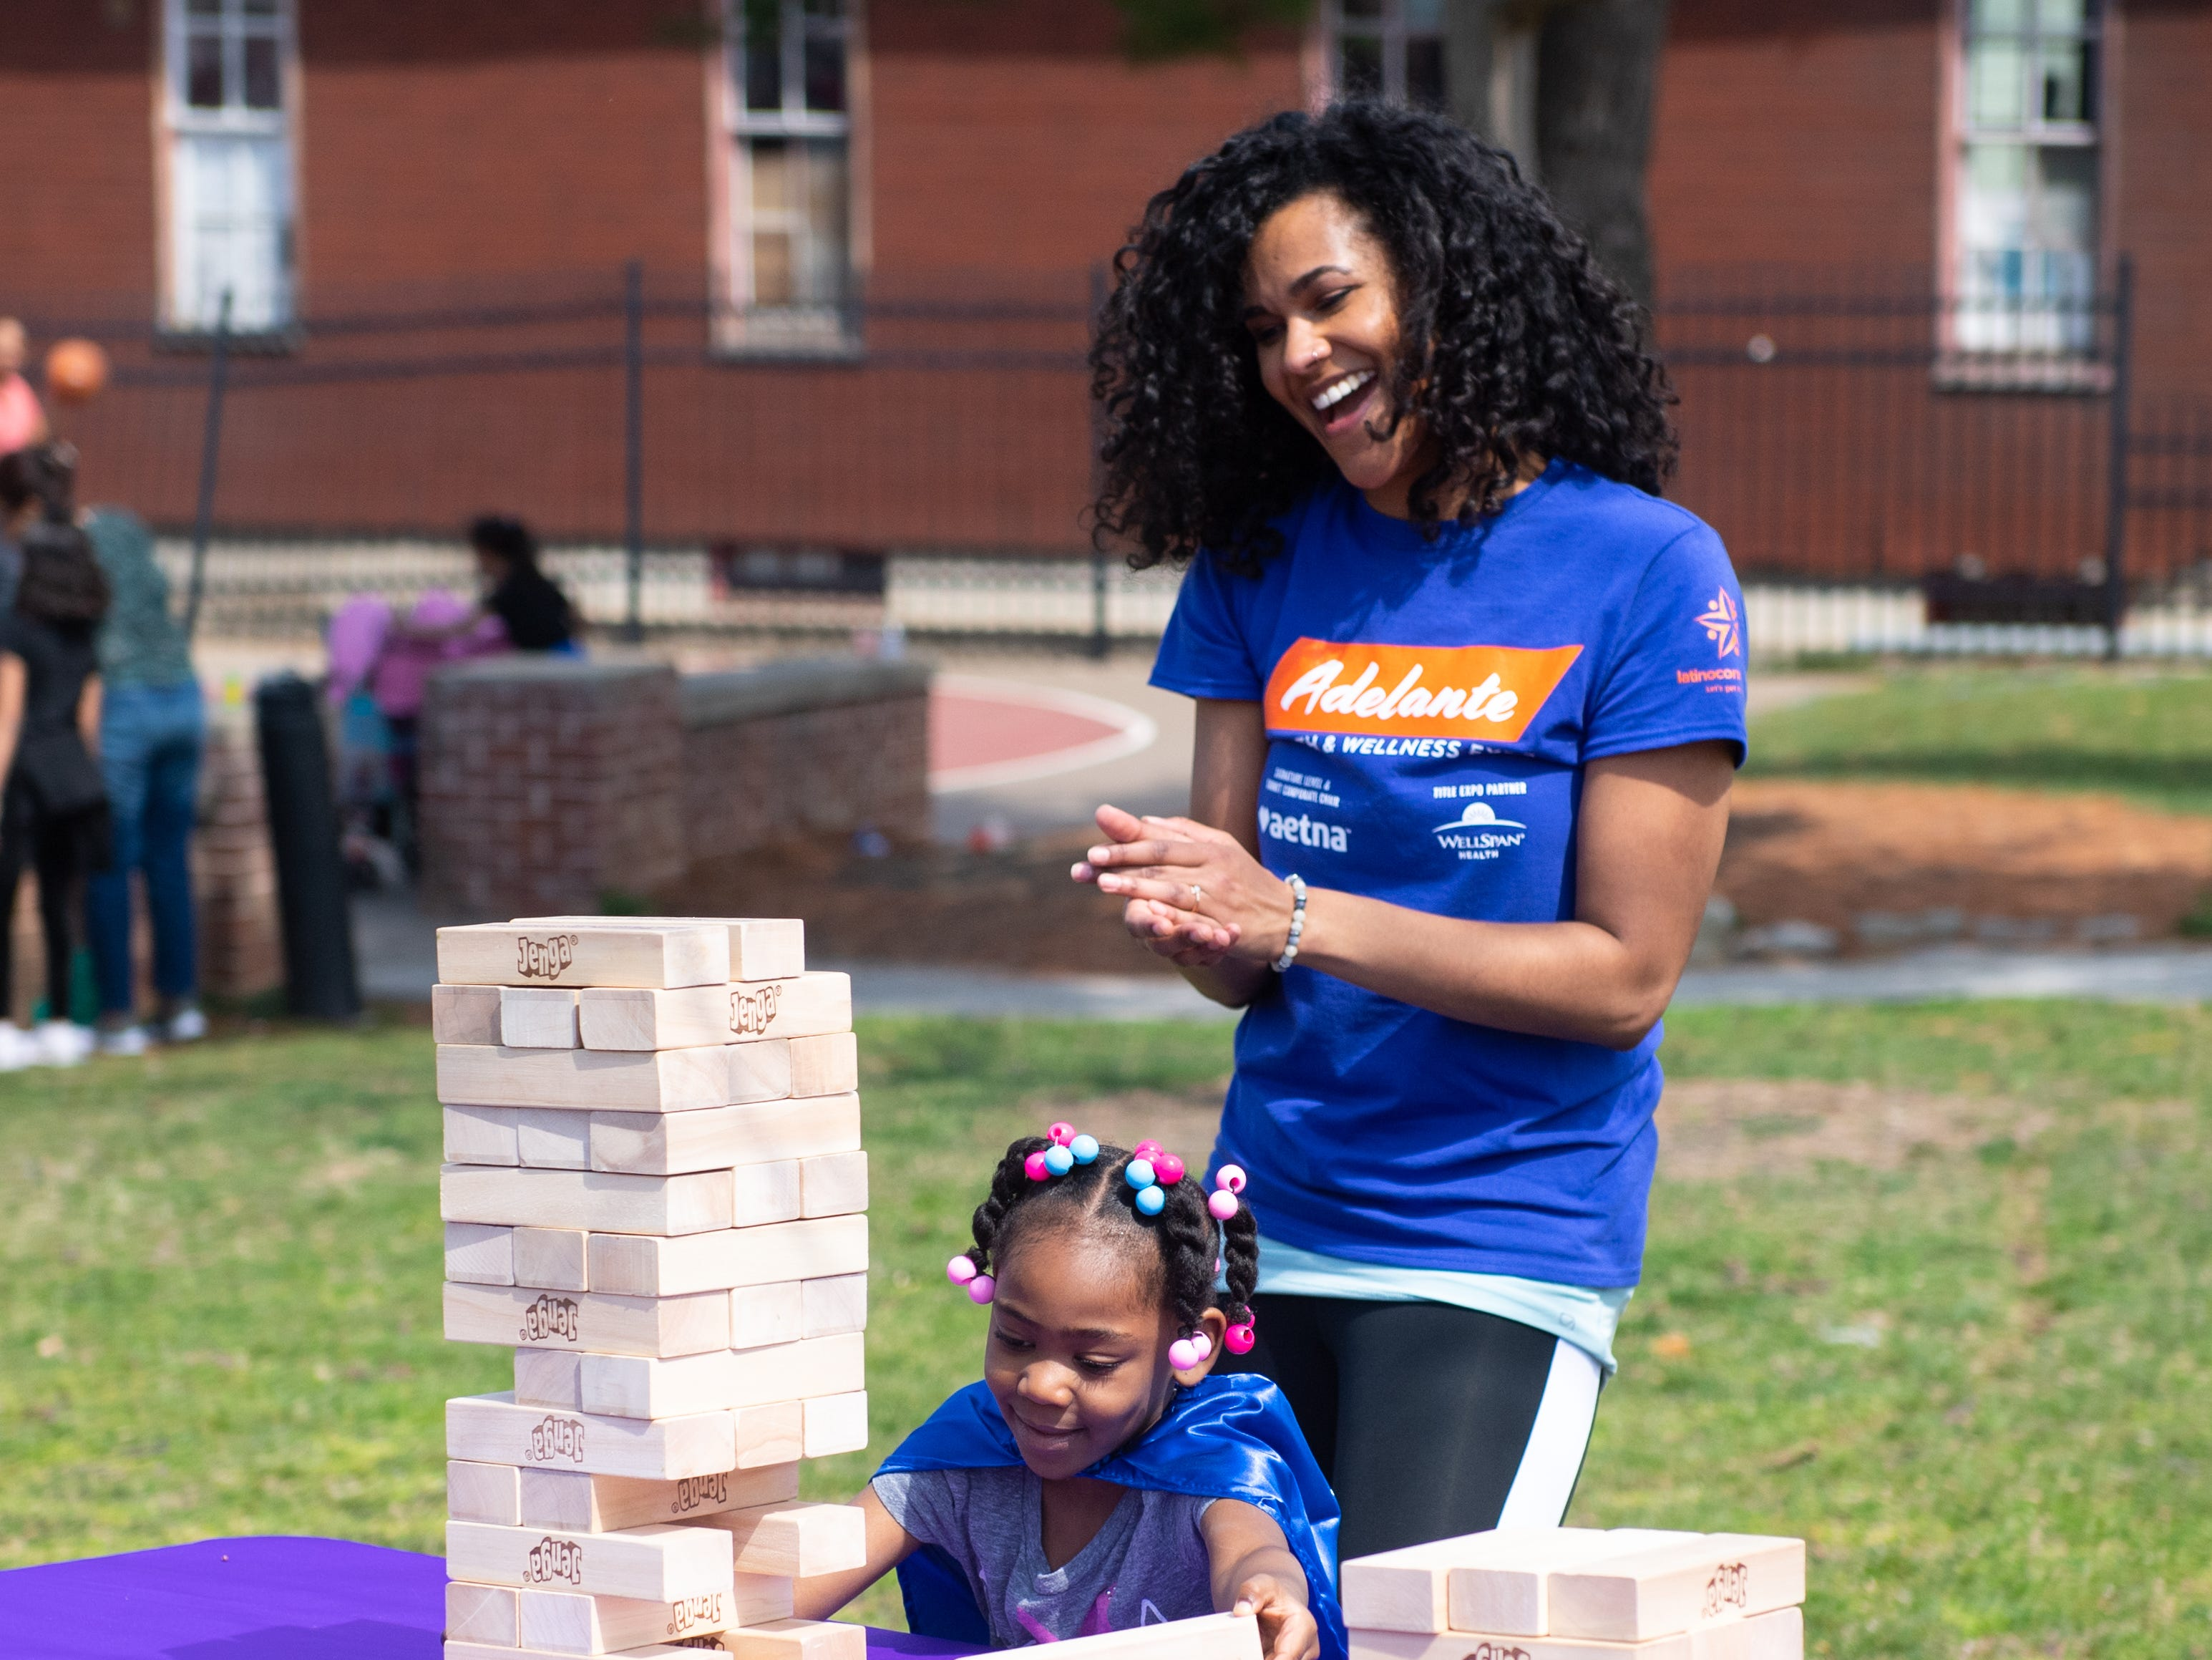 Zaria Pettigen carefully removes a block from the Jenga tower as Michelle Connett-Bernstein cheers her on during, March 30, 2019.